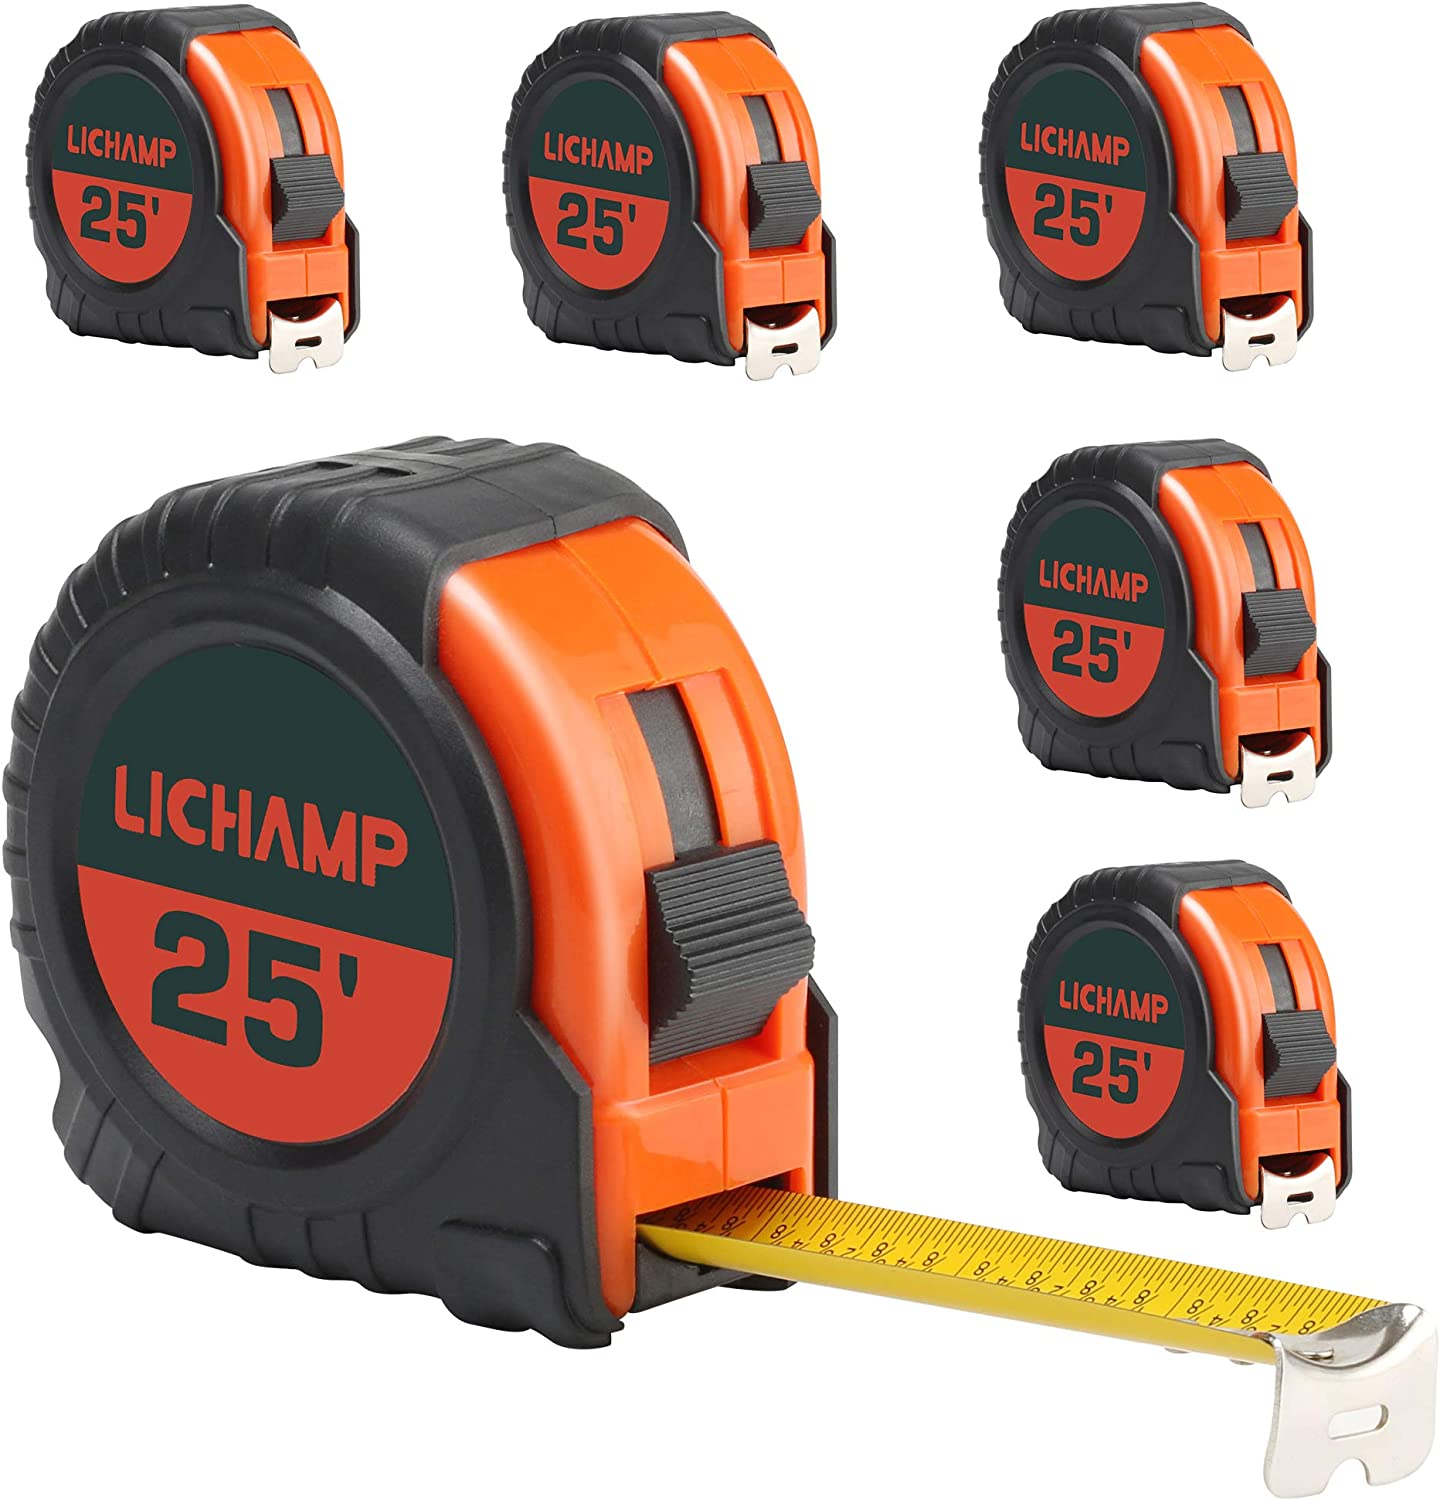 LICHAMP Tape Measure 25 ft, 6 Pack Bulk Easy Read Measuring Tape Retractable with Fractions 1/8, Measurement Tape 25-Foot by 1-Inch - -